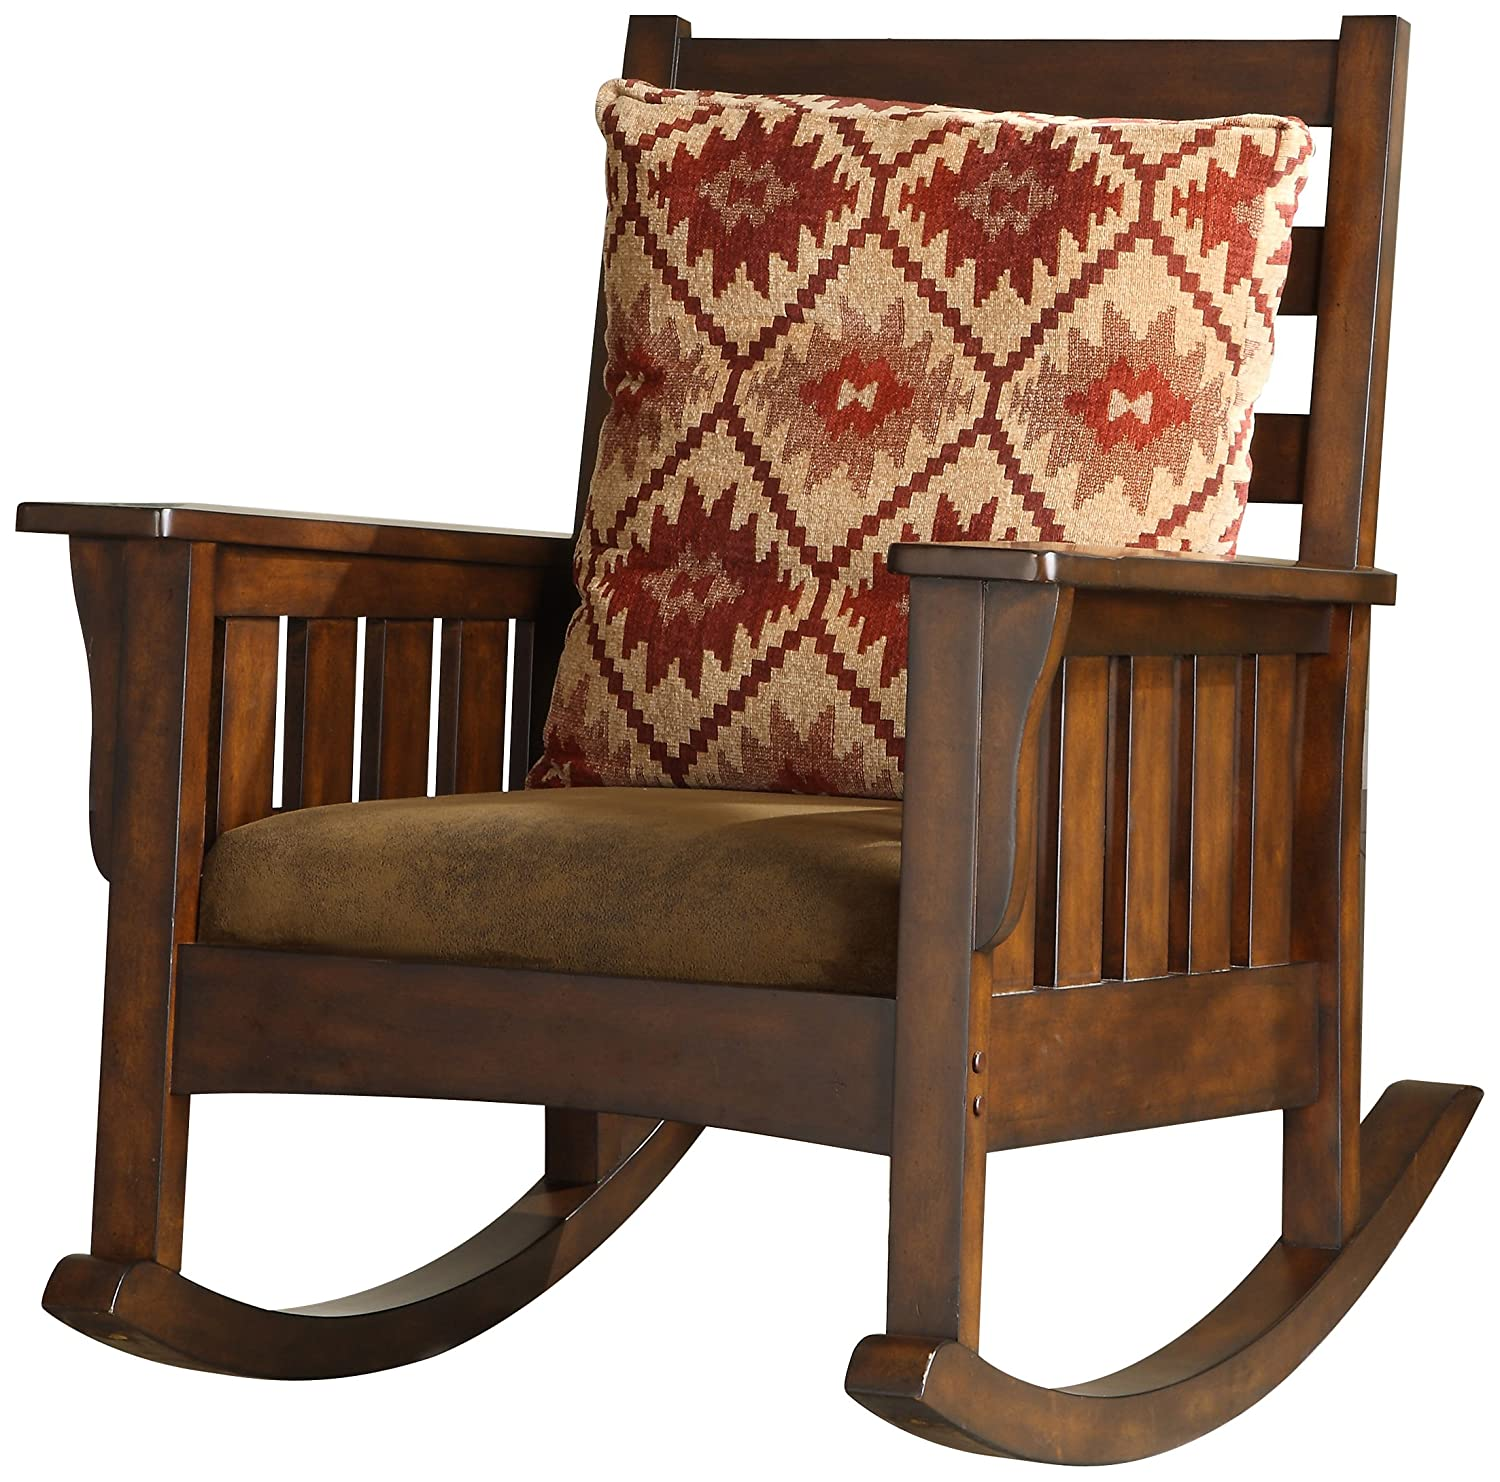 Amazon.com: Furniture of America Oria Rocking Chair, Dark Oak: Kitchen &  Dining - Amazon.com: Furniture Of America Oria Rocking Chair, Dark Oak